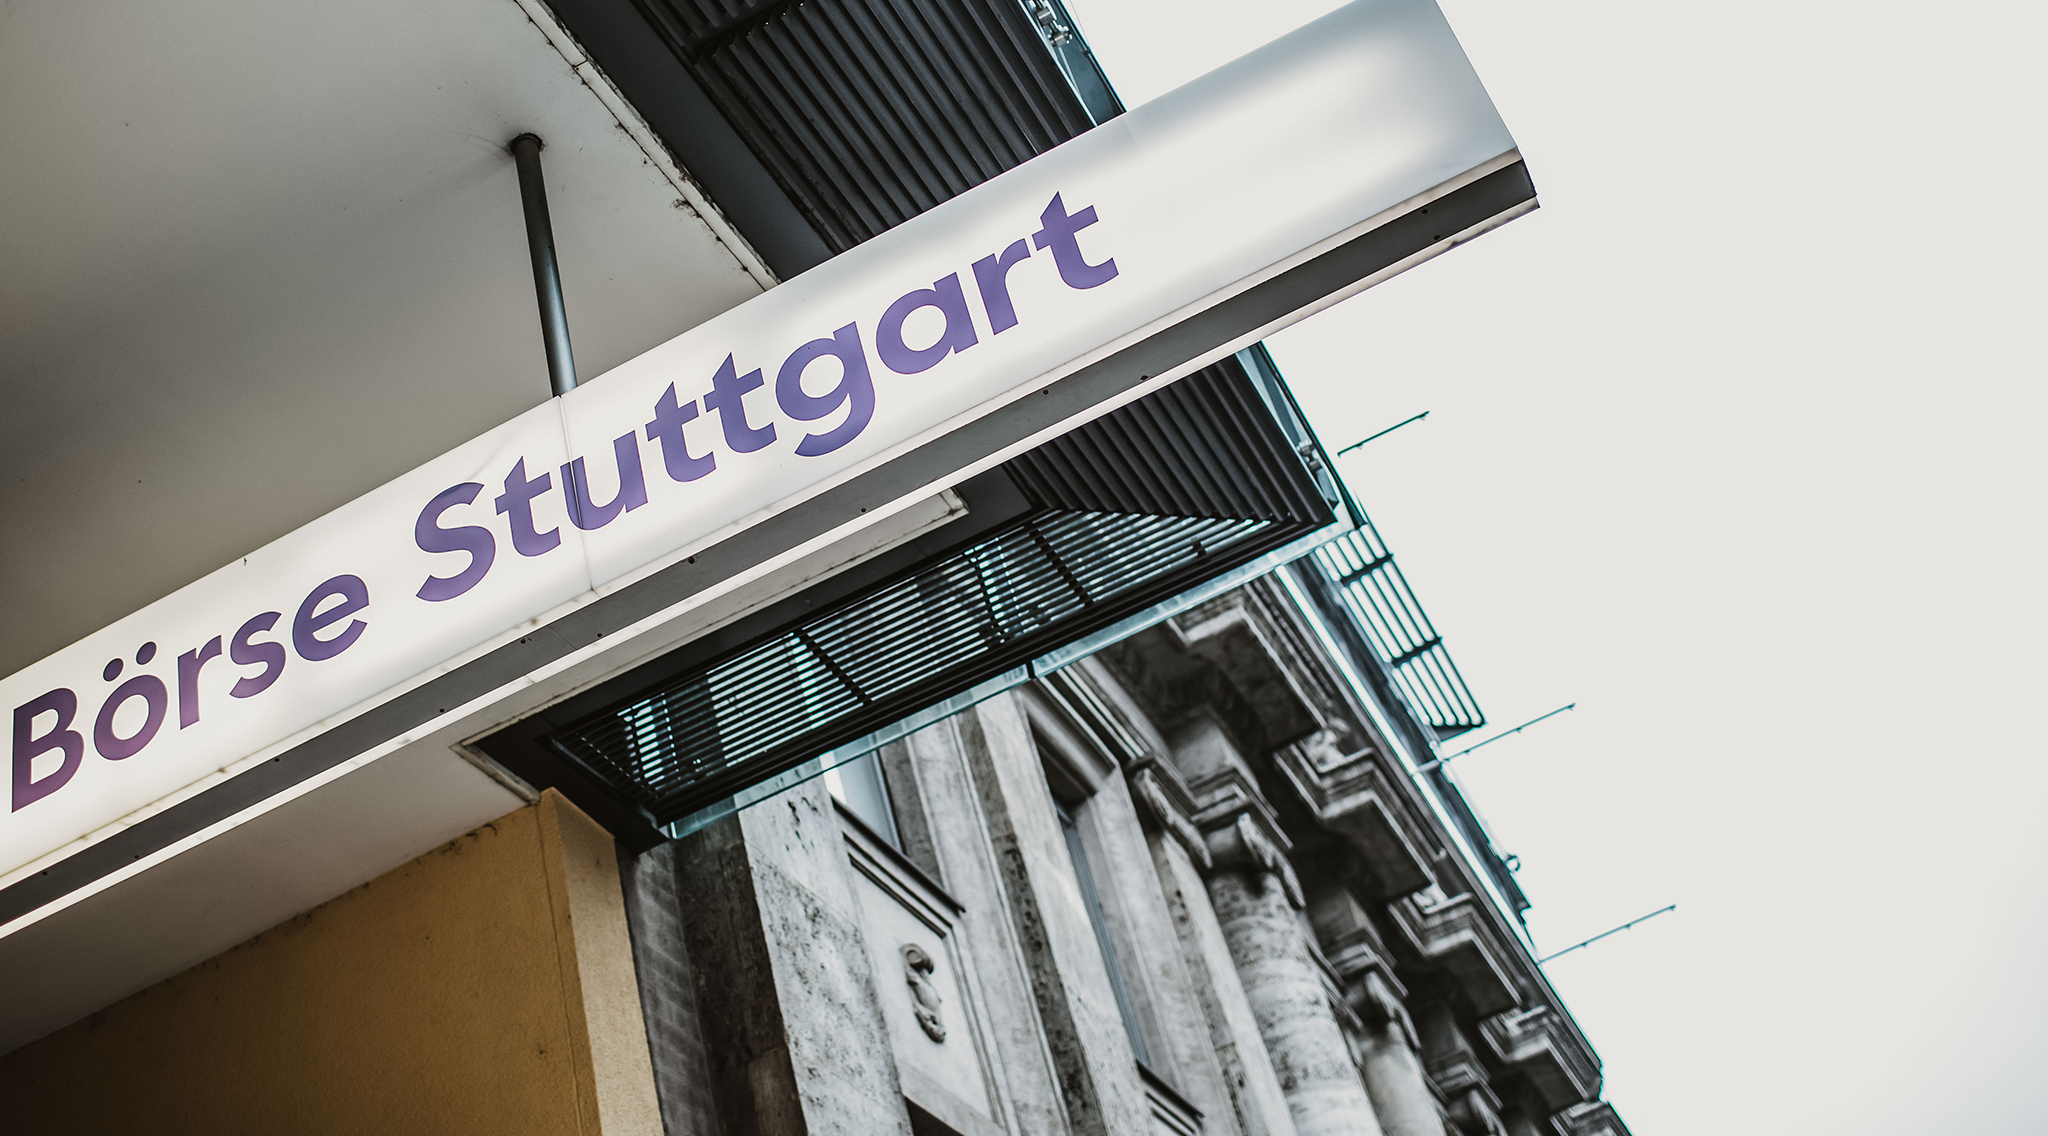 Exchange-Traded Notes on Cardano and Stellar Now Tradable at Boerse Stuttgart